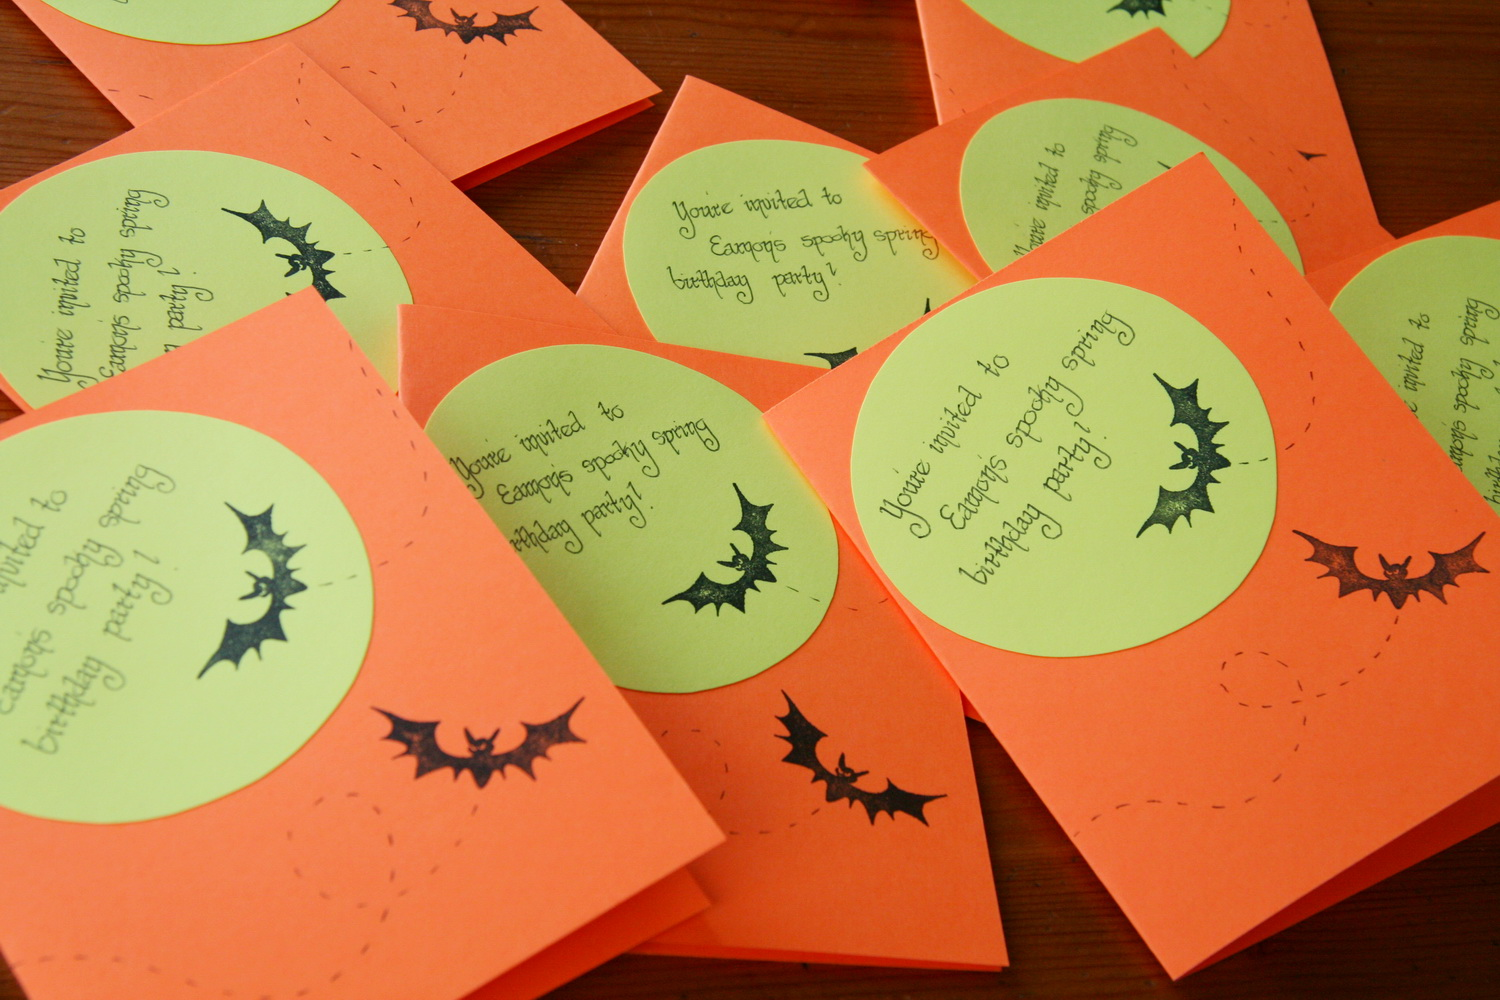 Teetoo: Spooky Party: Pop-up Bat Cards, Sand Witches + Cupcakes!